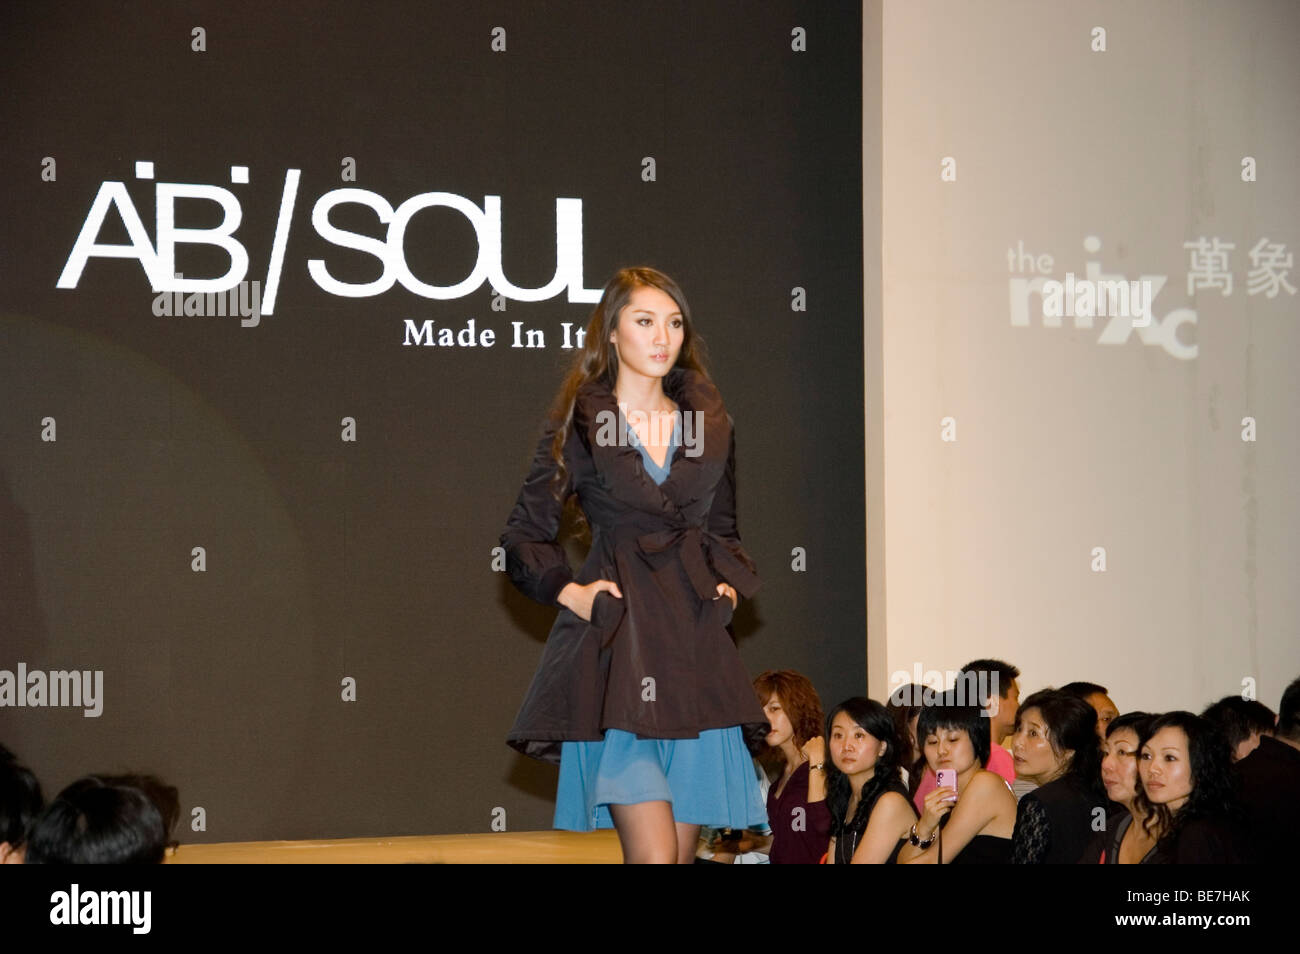 Fashion week in Shenzhen city, China. Asian models present italian clothes from A/B Soul. - Stock Image